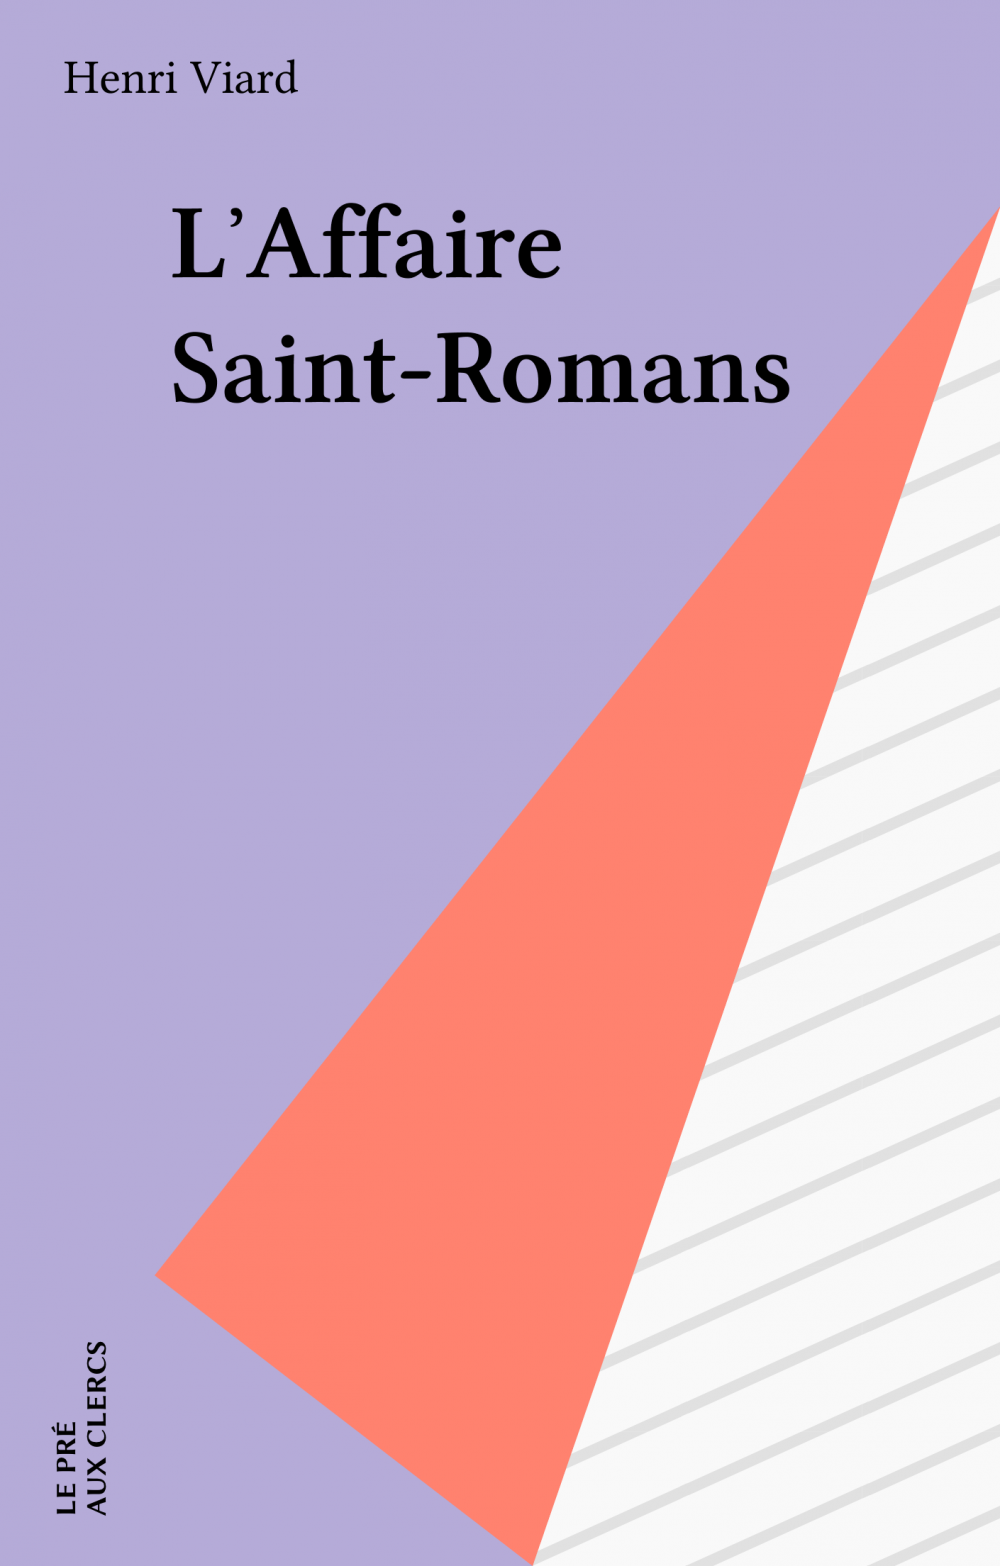 L'Affaire Saint-Romans